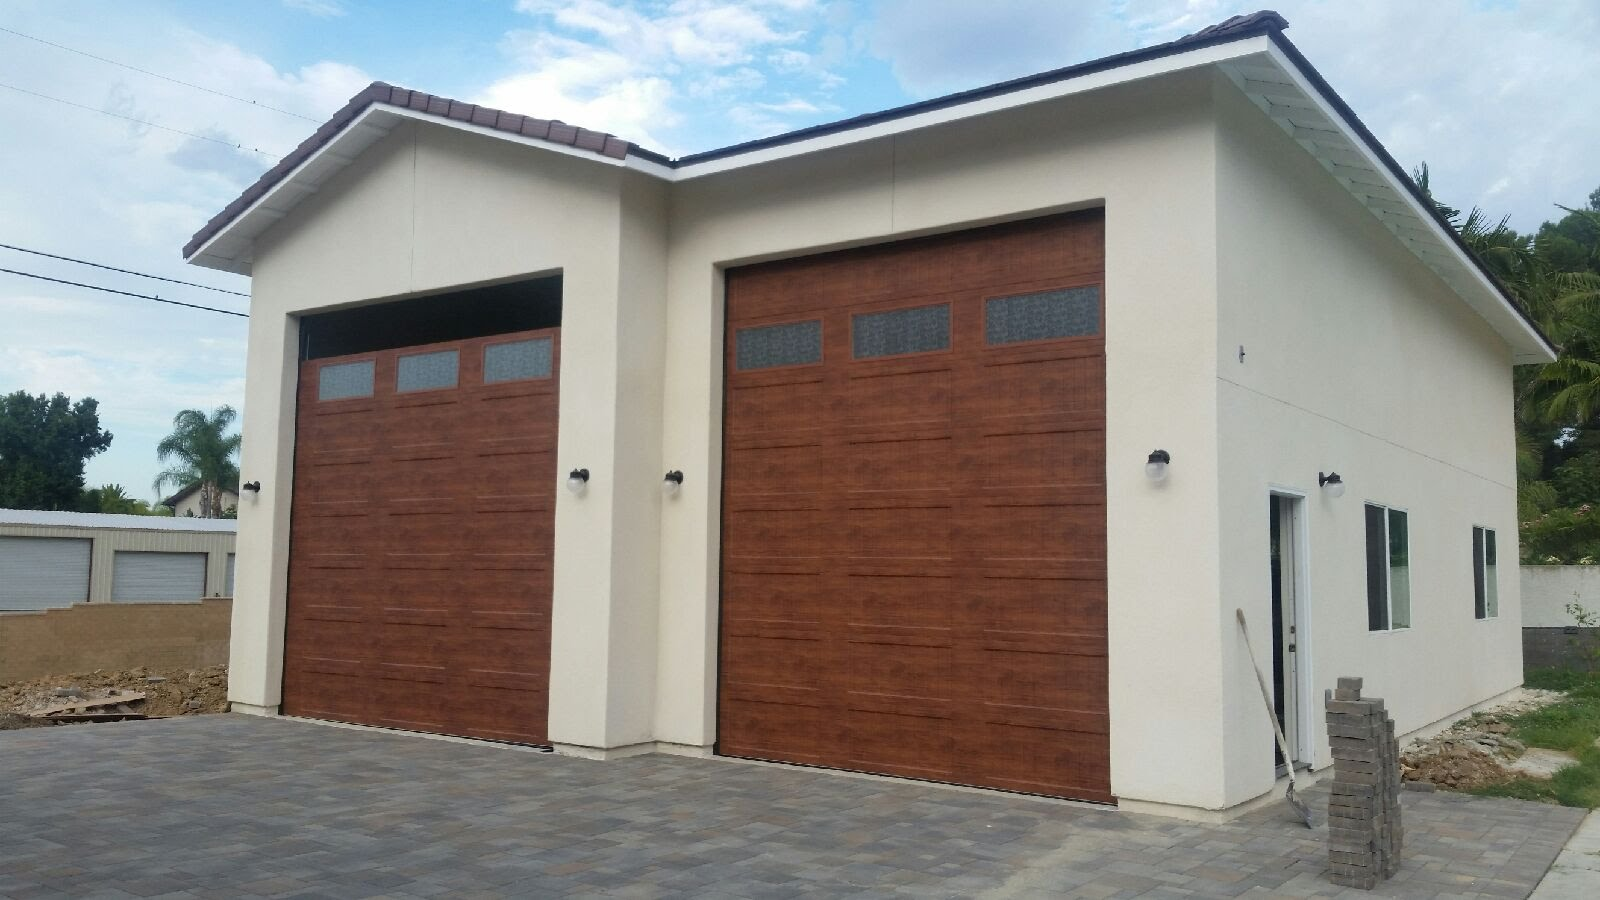 Garage Door garage door repair costa mesa pics : Juan Garage Doors Services| Garage Door Services in Santa Ana ...